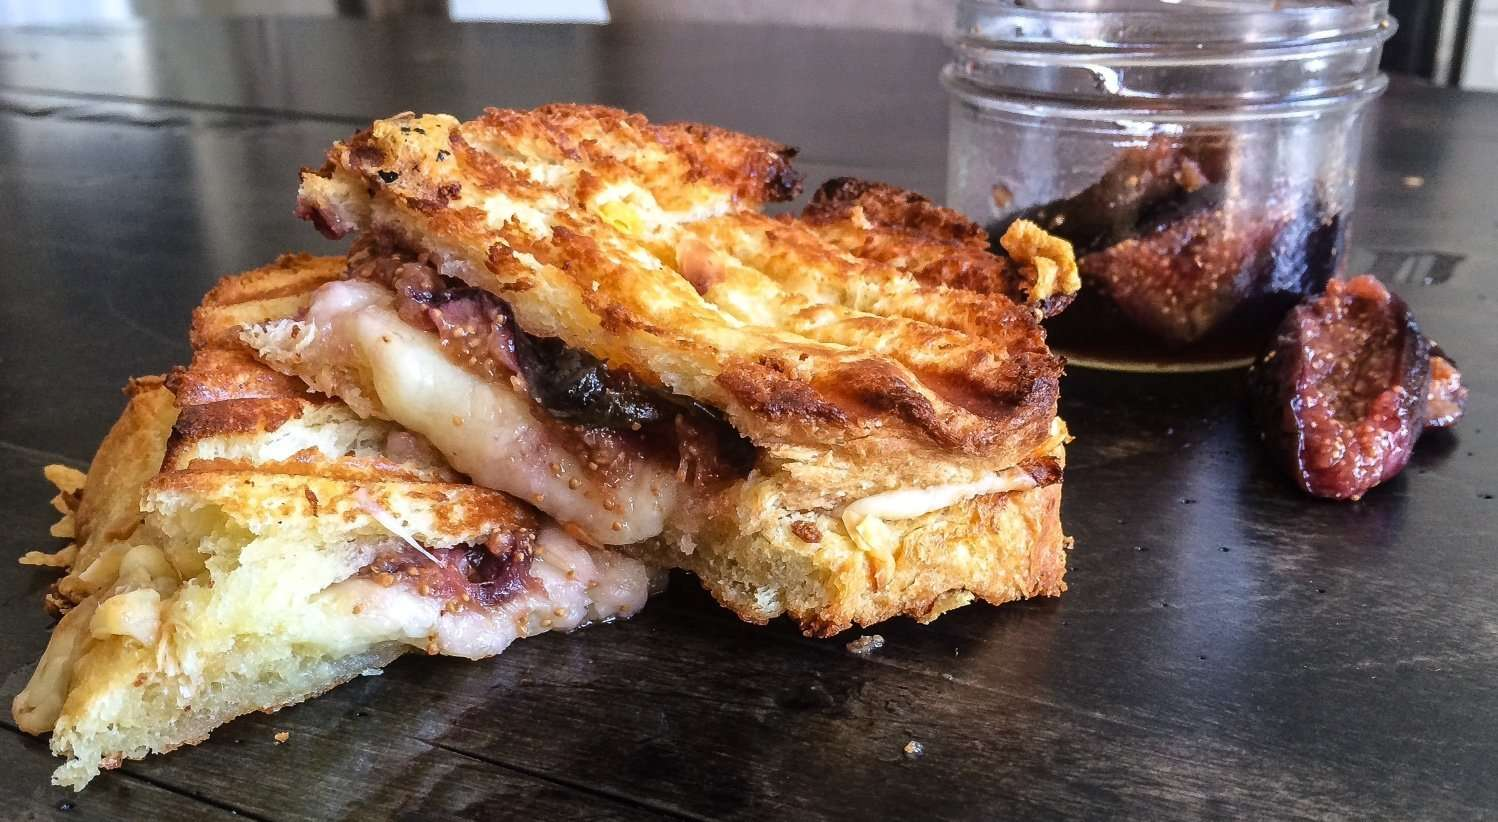 Sweet Bread Grilled Cheese with Aged Cheddar & Brandied Figs